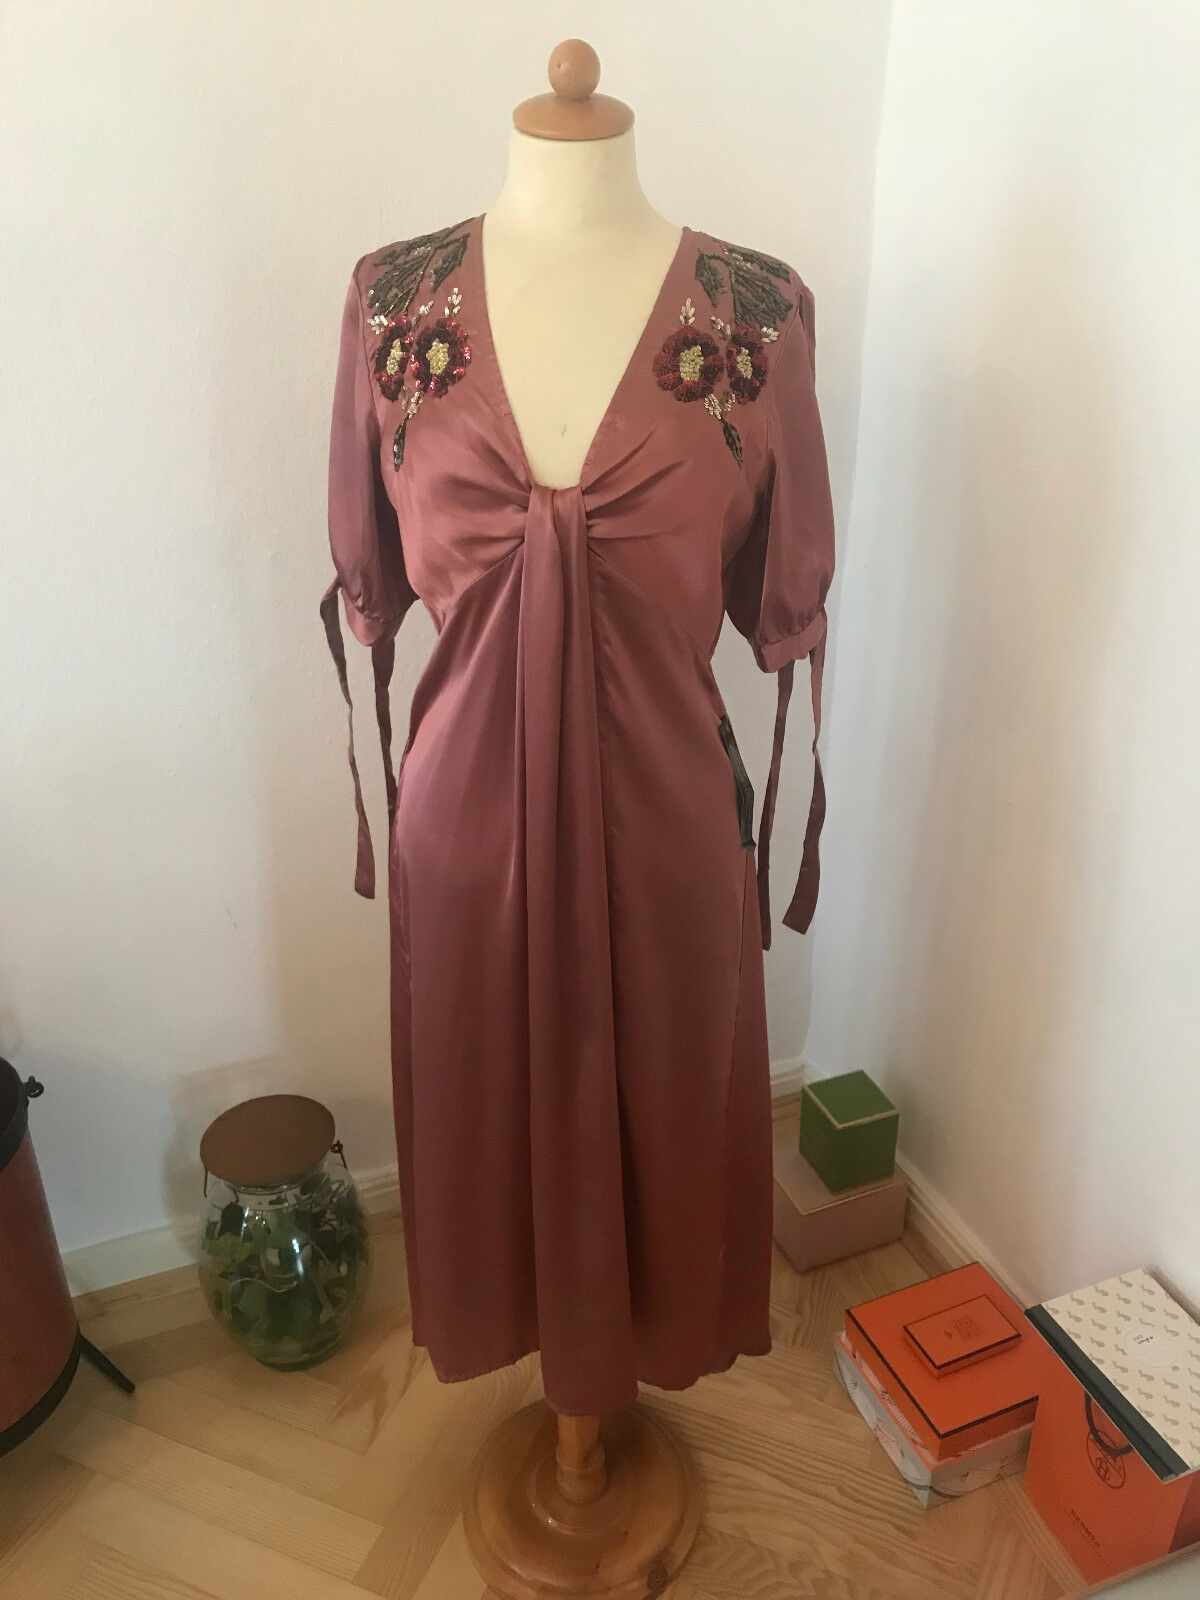 TOPSHOP Dress, Embroidery NEW, 38, Blogger, SOLD OUT